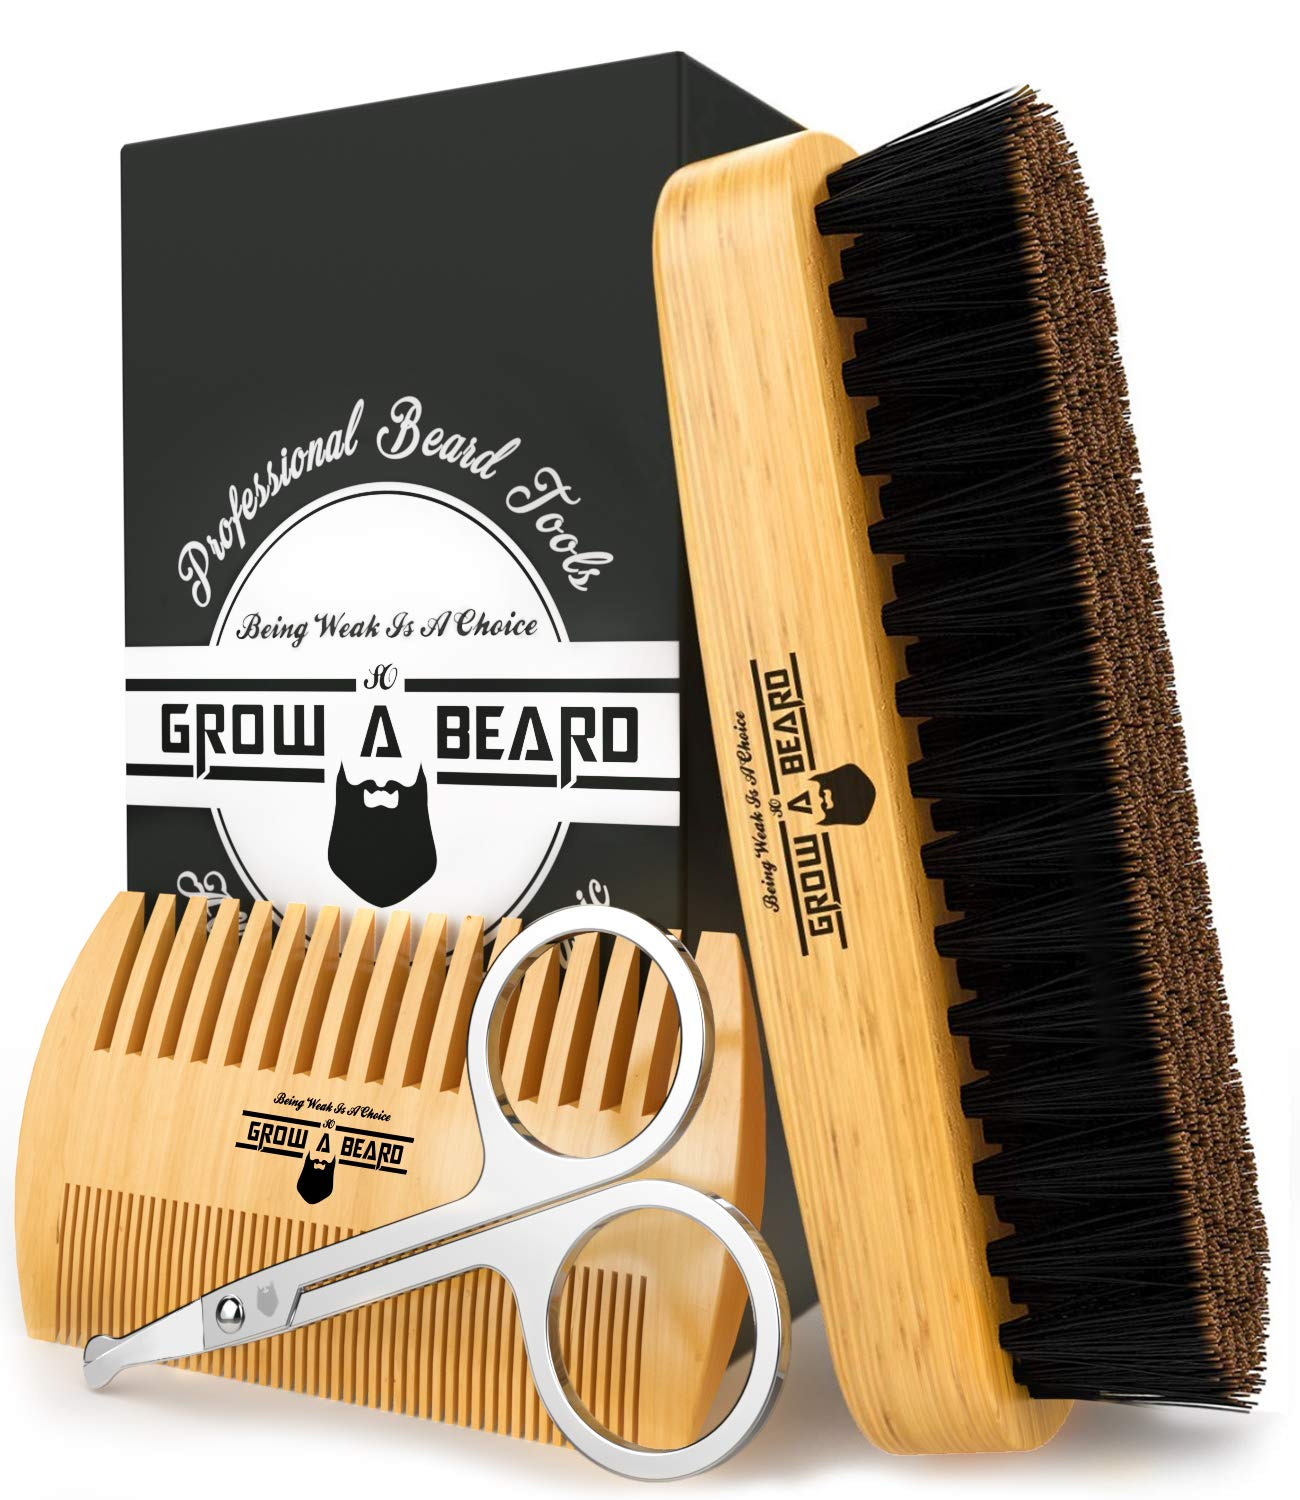 Beard Brush & Comb Grooming Kit for Men's Care, To Distribute Balm or Oil for Growth & Styling, Adds Shine & Softness